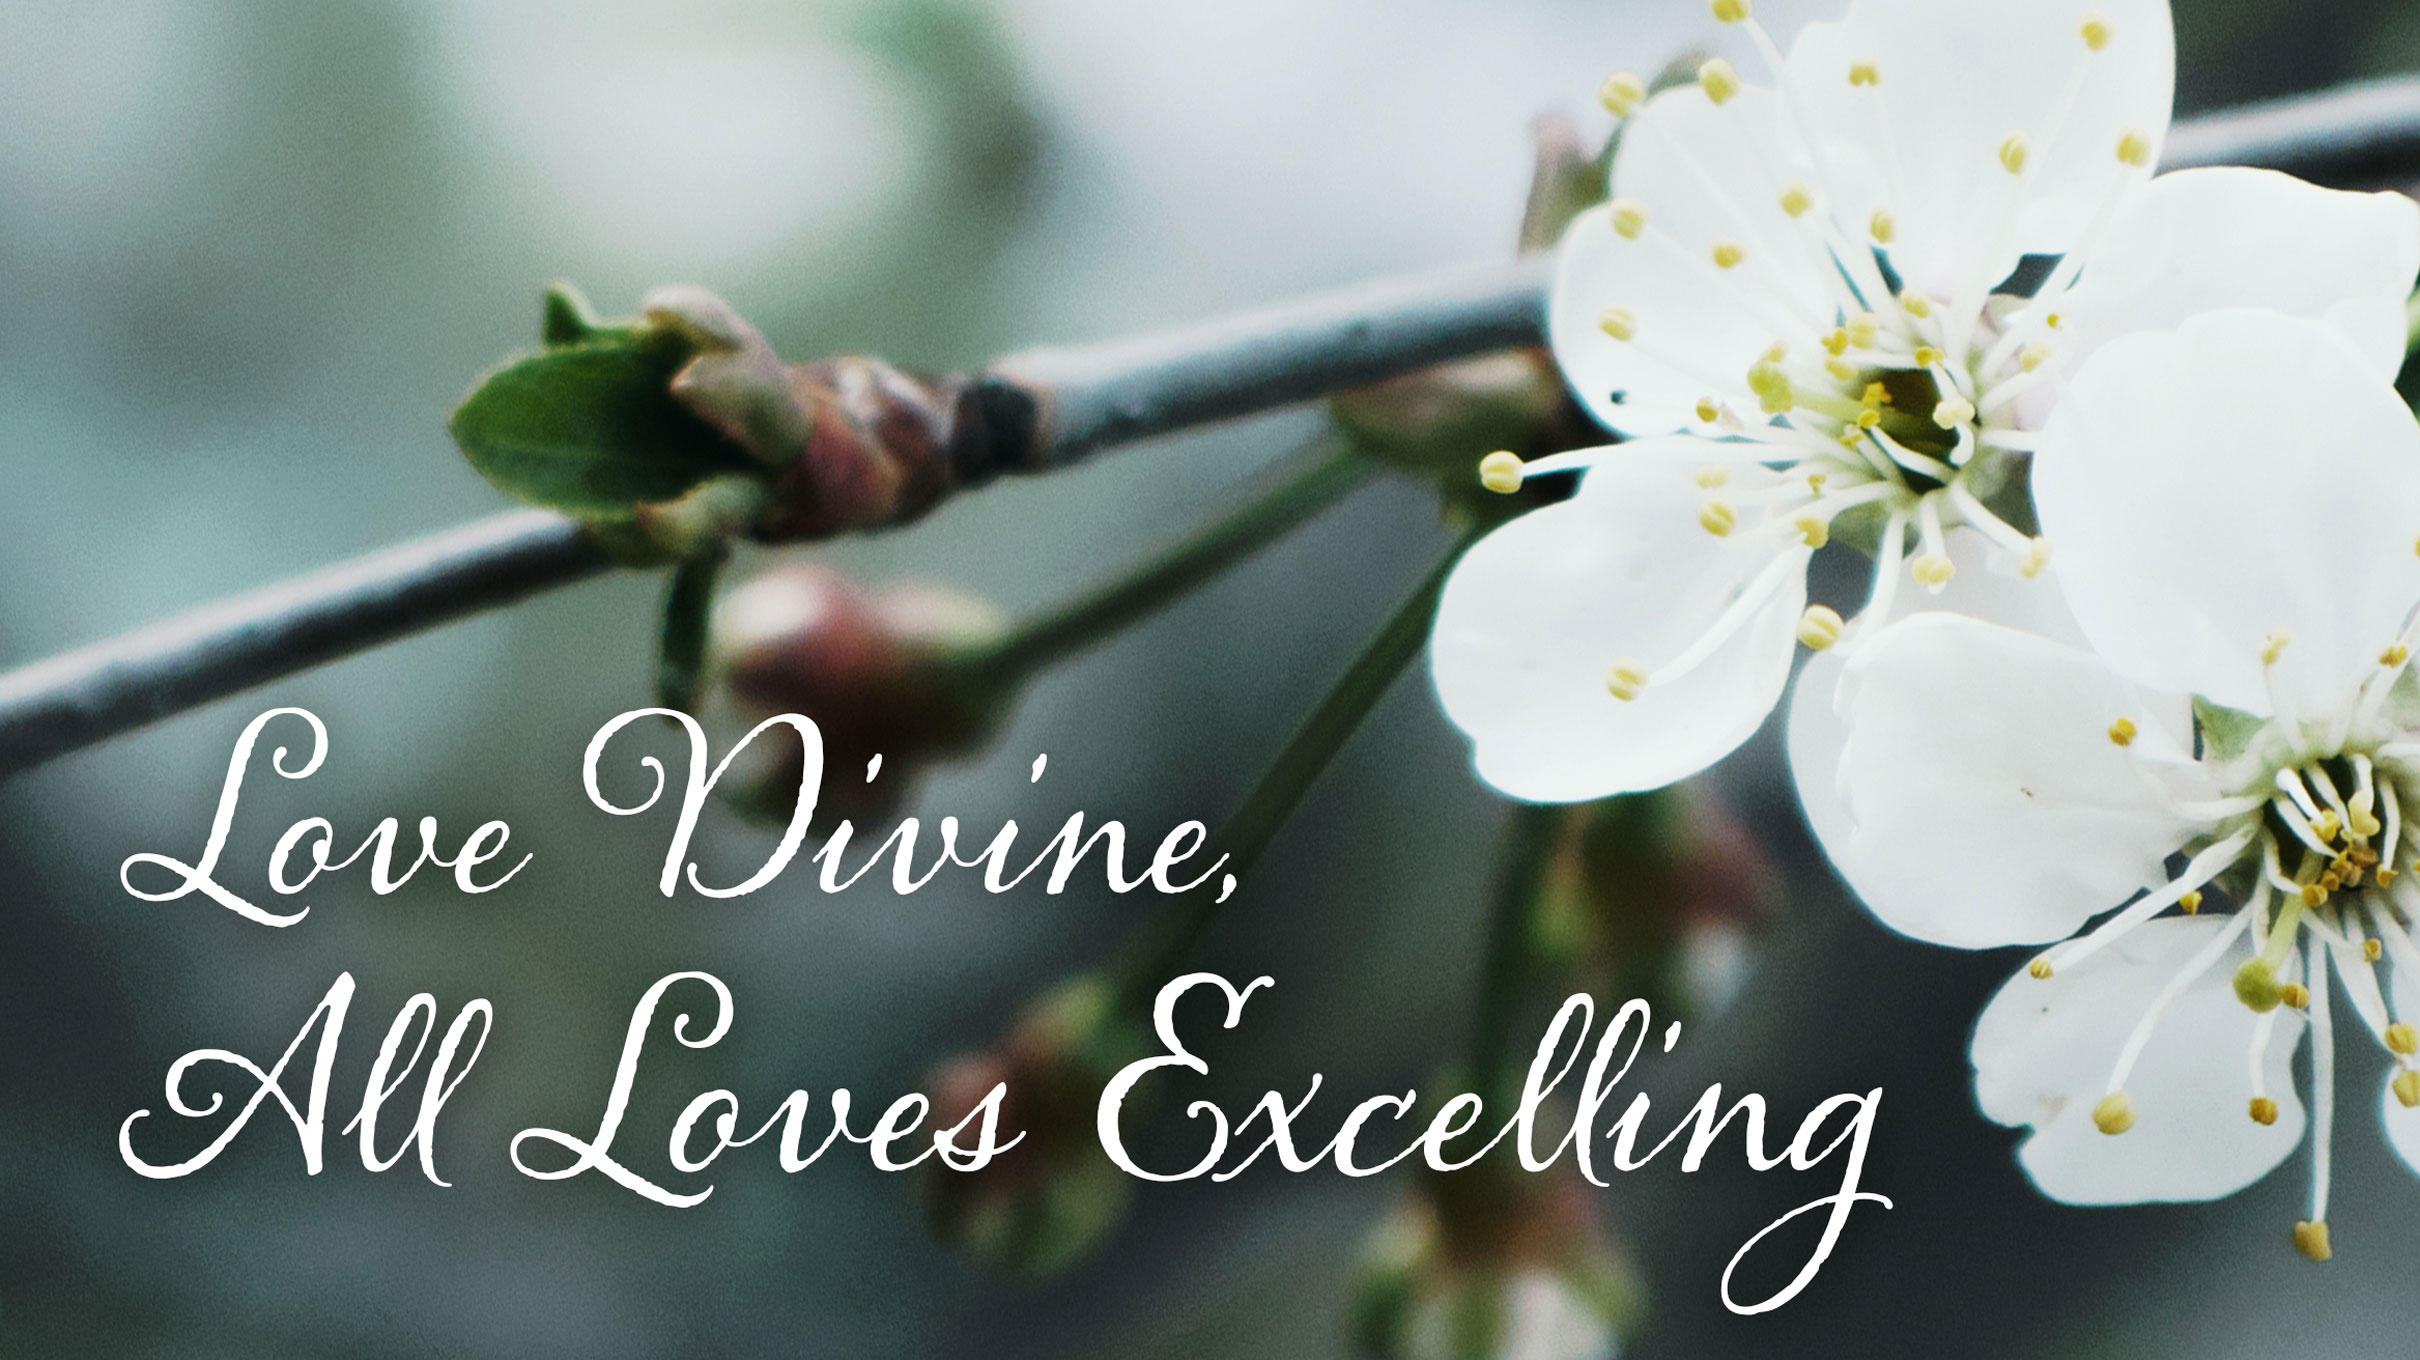 Love Divine, All Loves Excelling is a wonderful hymn for Lent or any time!